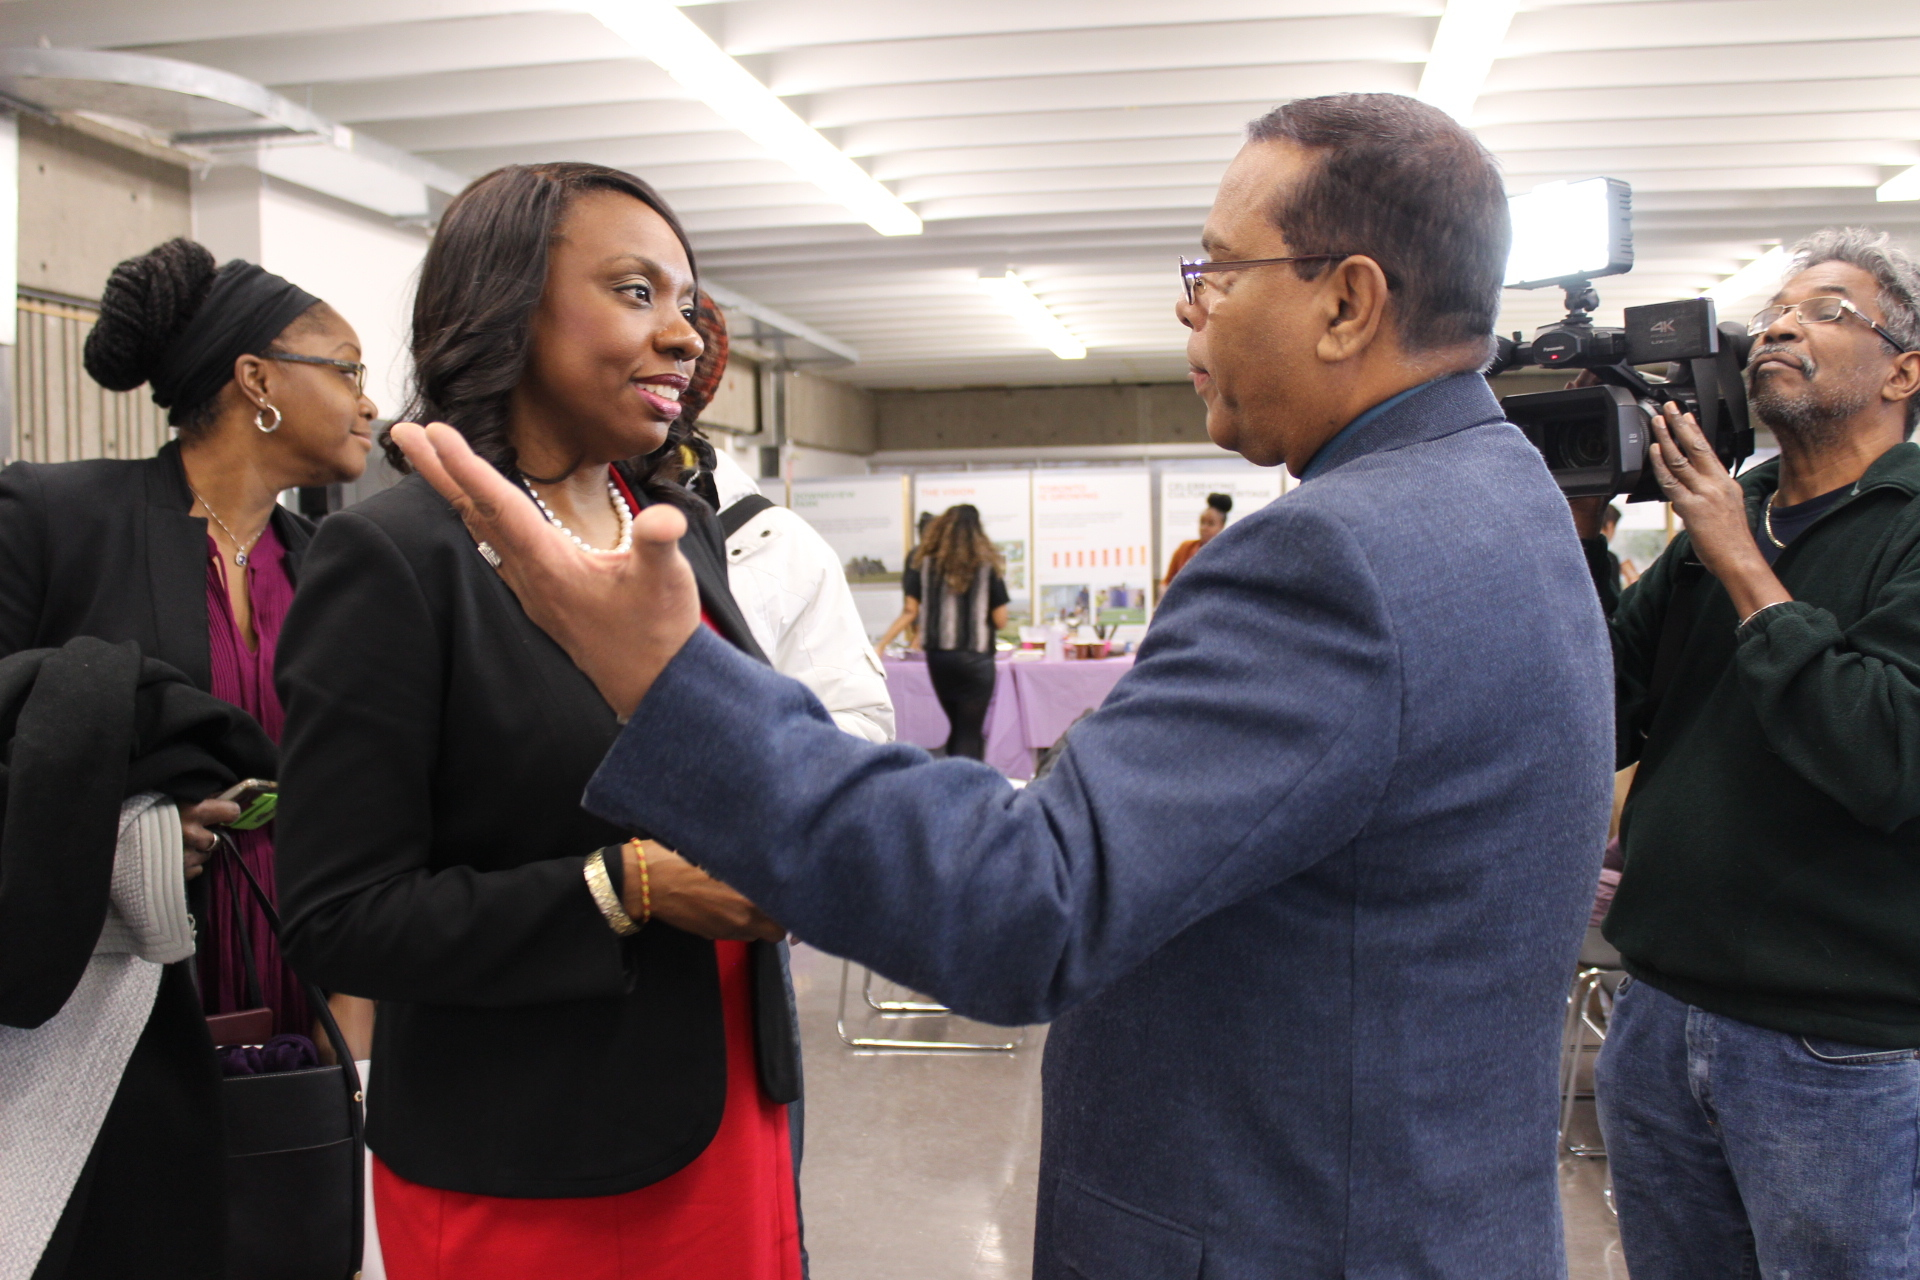 Minister of Education, Mitzie Hunter, and C5 Treasurer, John Laban, at the public launching of C5